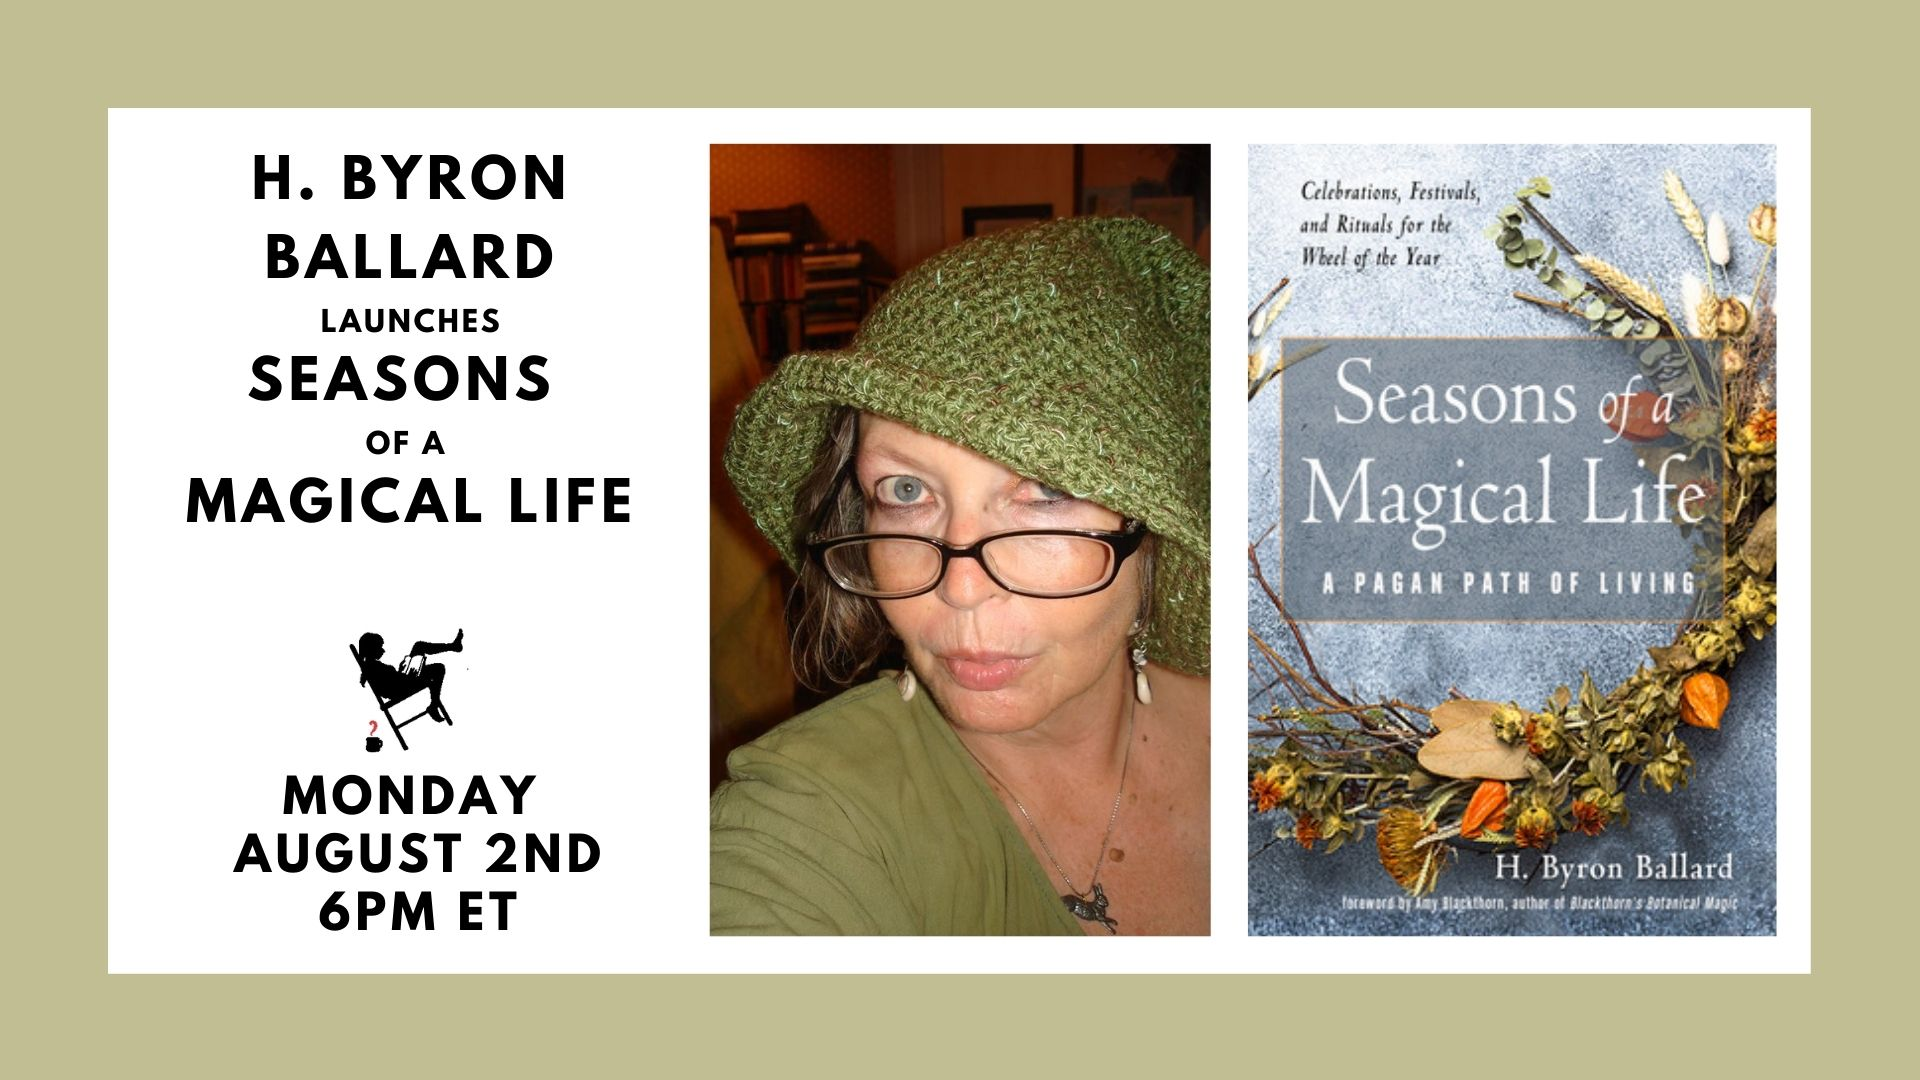 Image shows featured book cover and headshot of the author for H. Byron Ballard Launches Seasons of a Magical Life, Monday, August 2nd, 6 PM ET